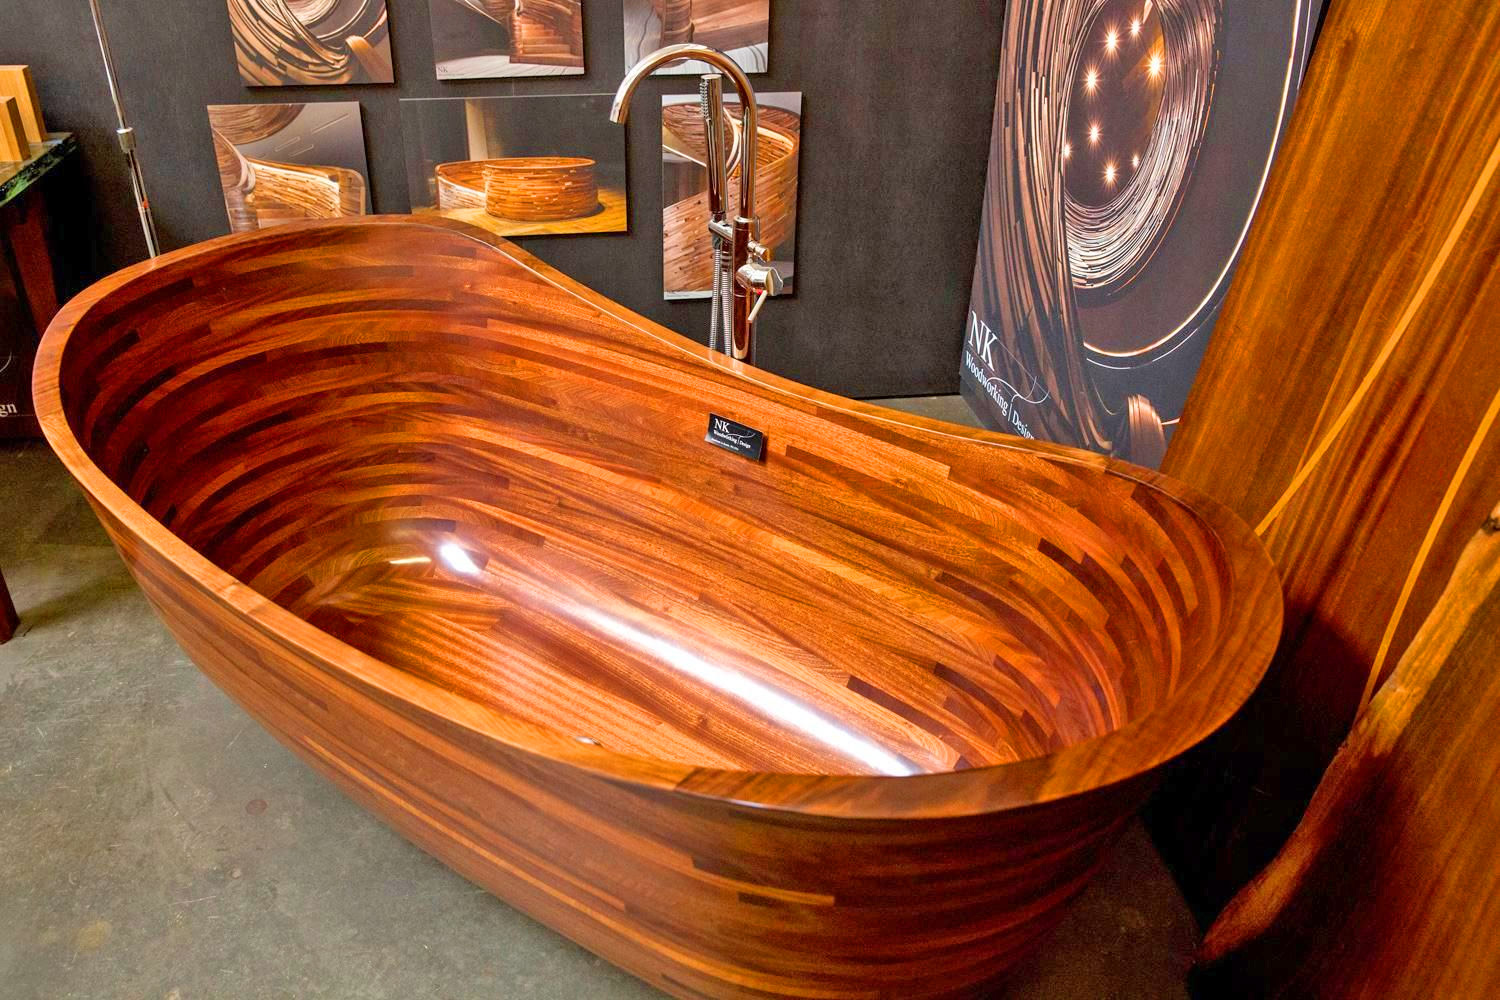 Luxurious Wooden Bathtubs - Shipbuilder wooden bathtubs inspired from ships - NK Woodworking Design